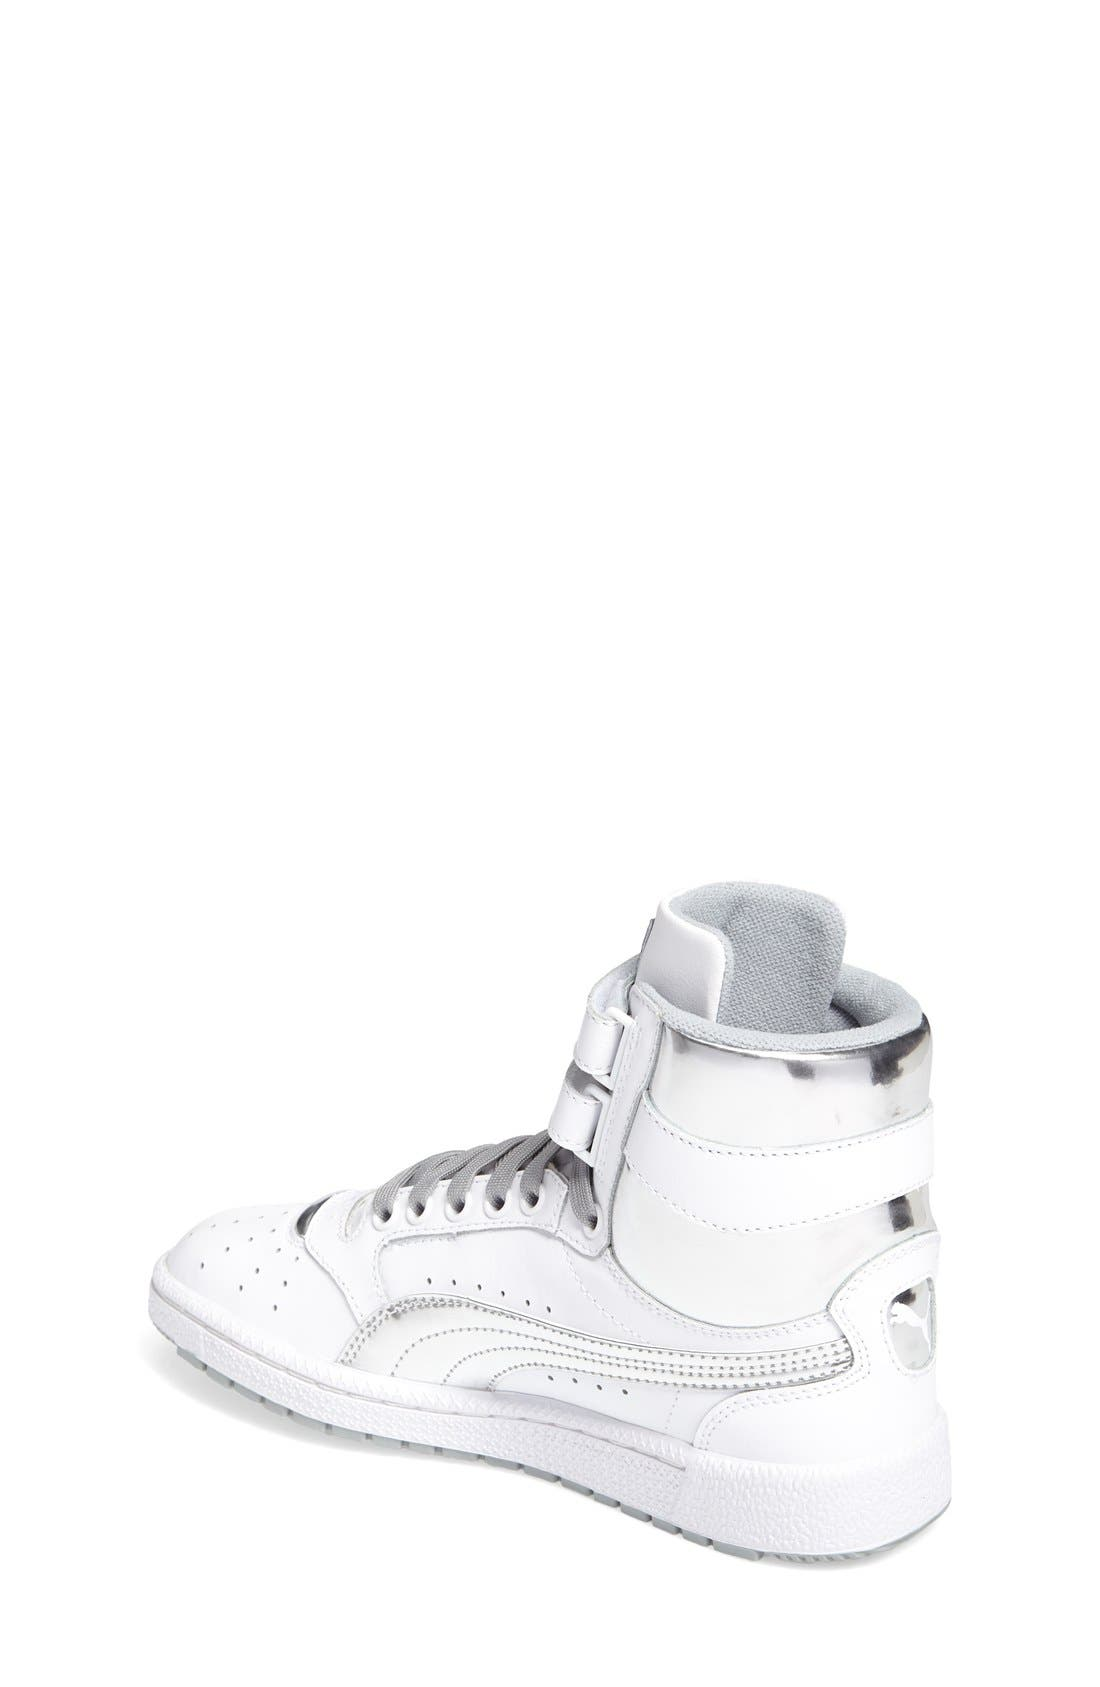 Sky II Hi Foil Jr Sneaker,                             Alternate thumbnail 2, color,                             Puma White-Puma Silver